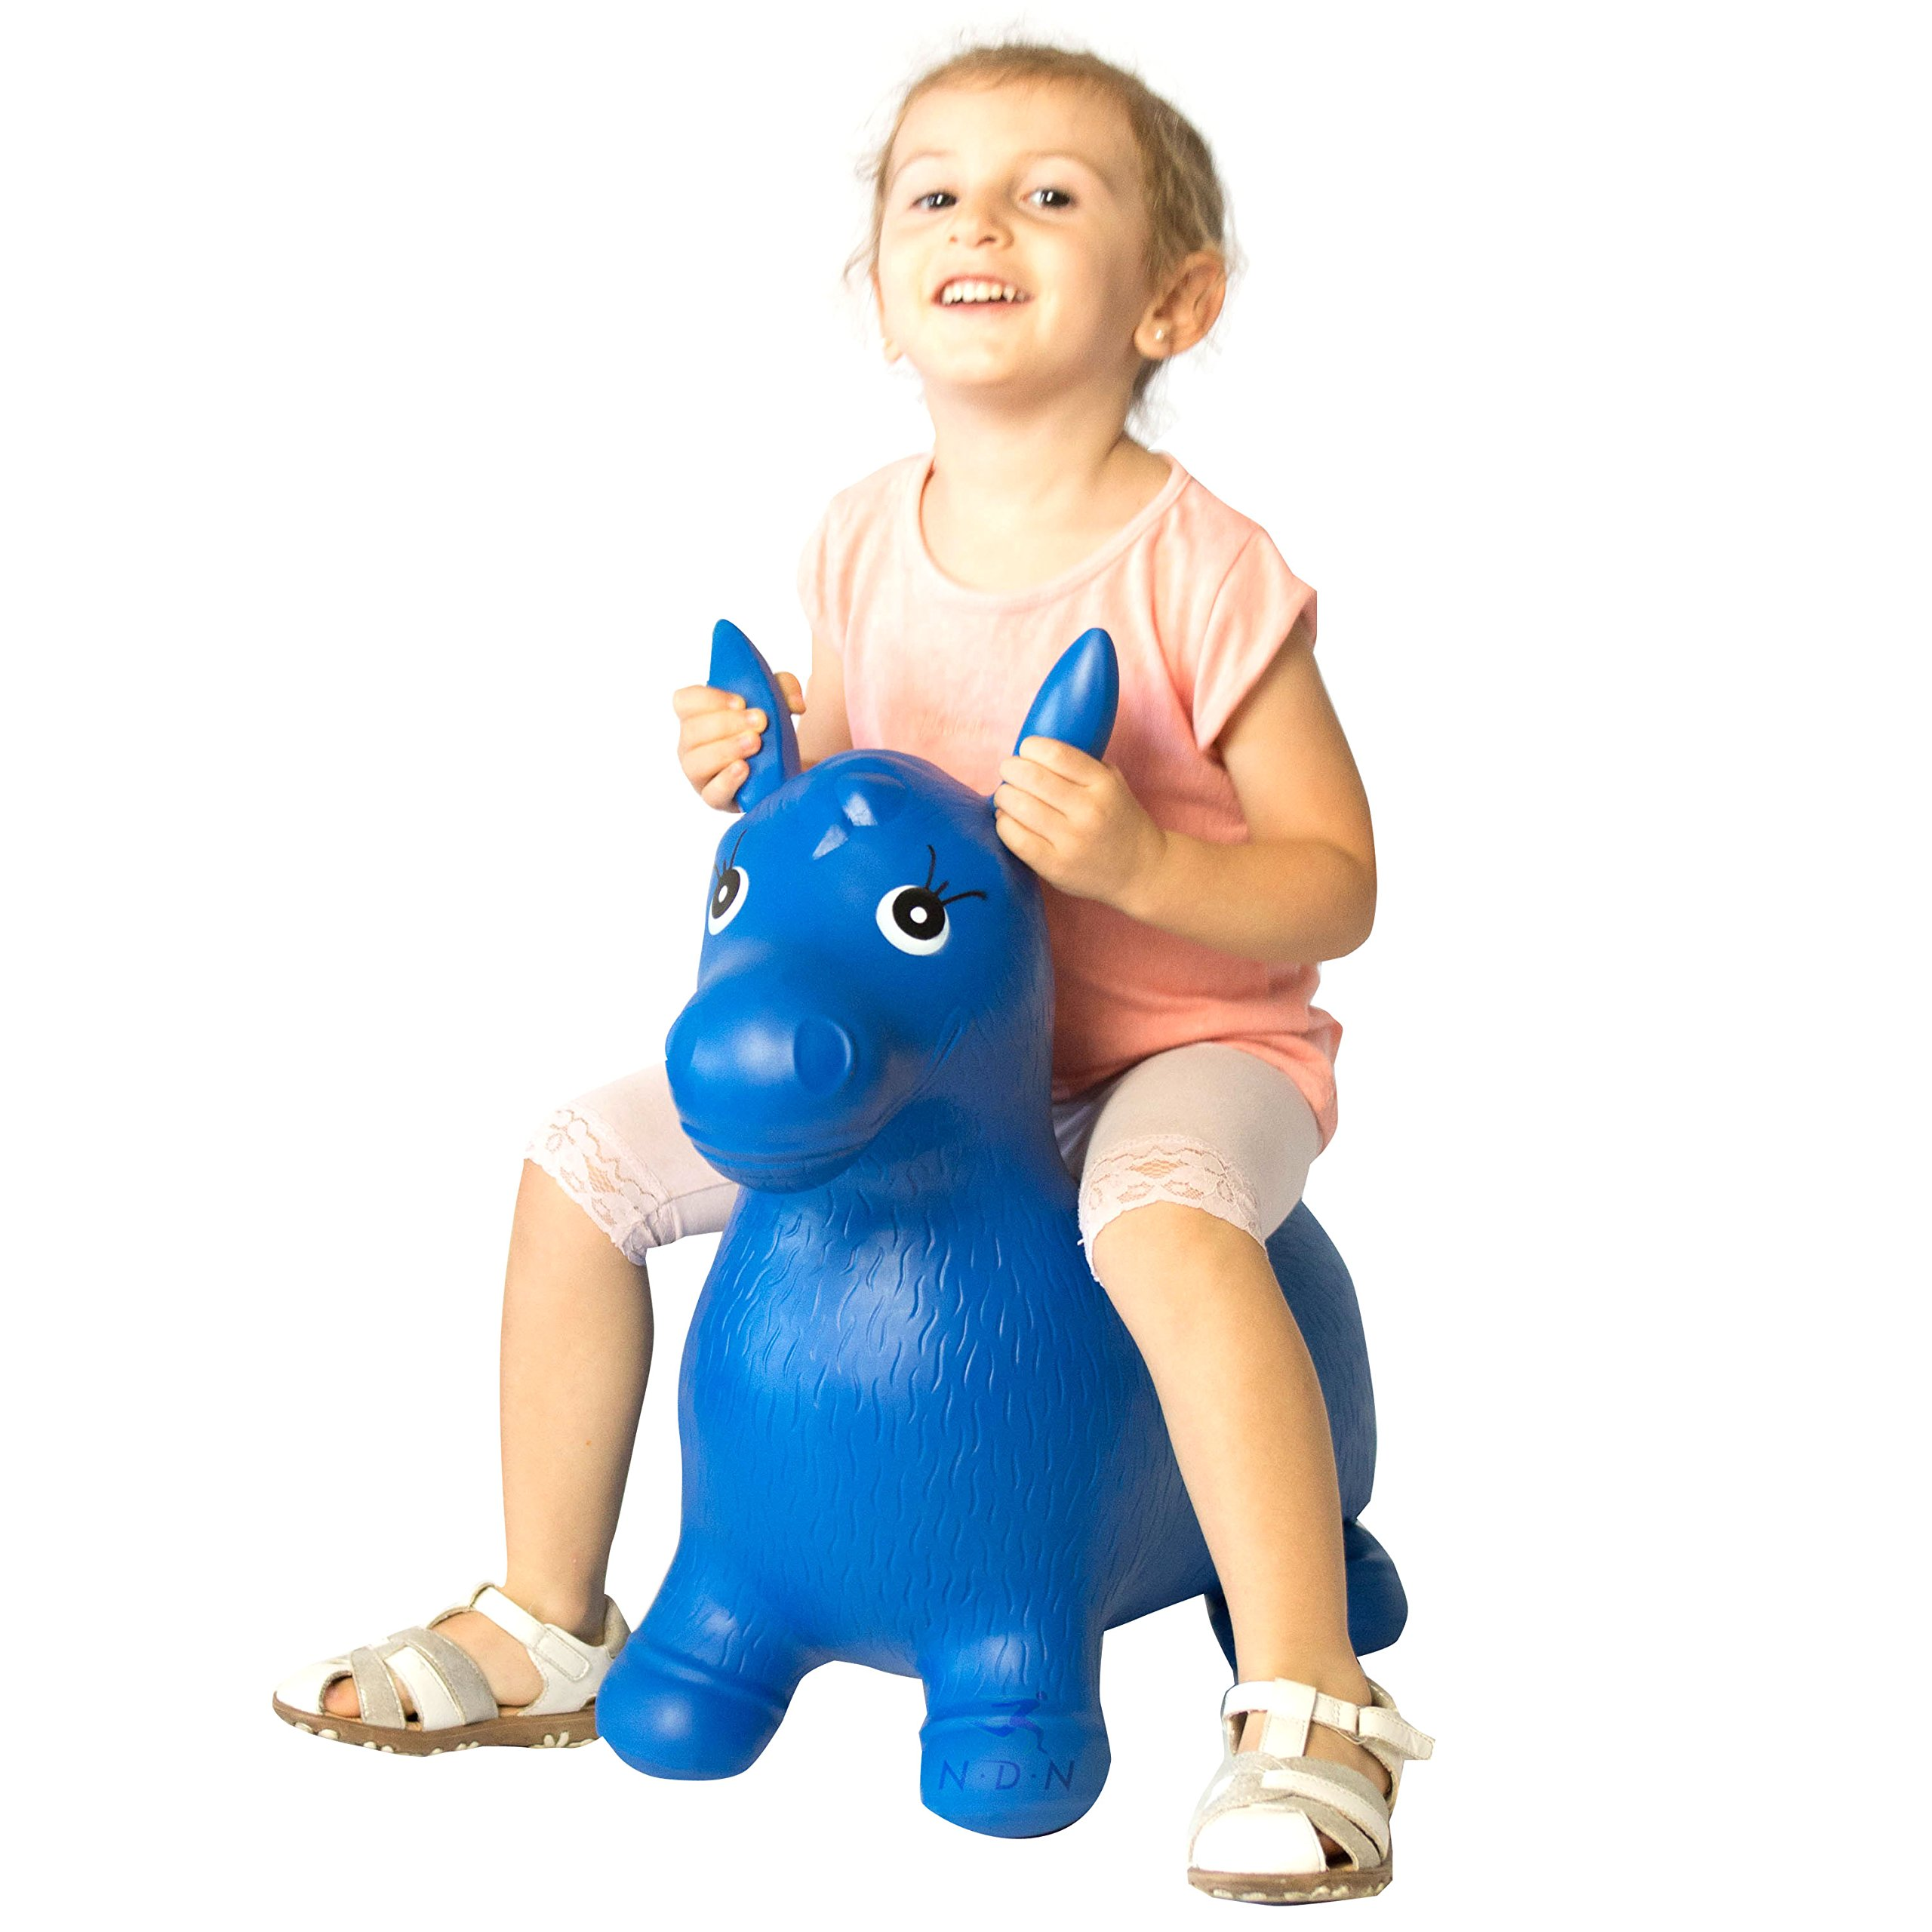 Bouncy animal, bouncy horse inflatable with pump by NDN LINE (Image #2)